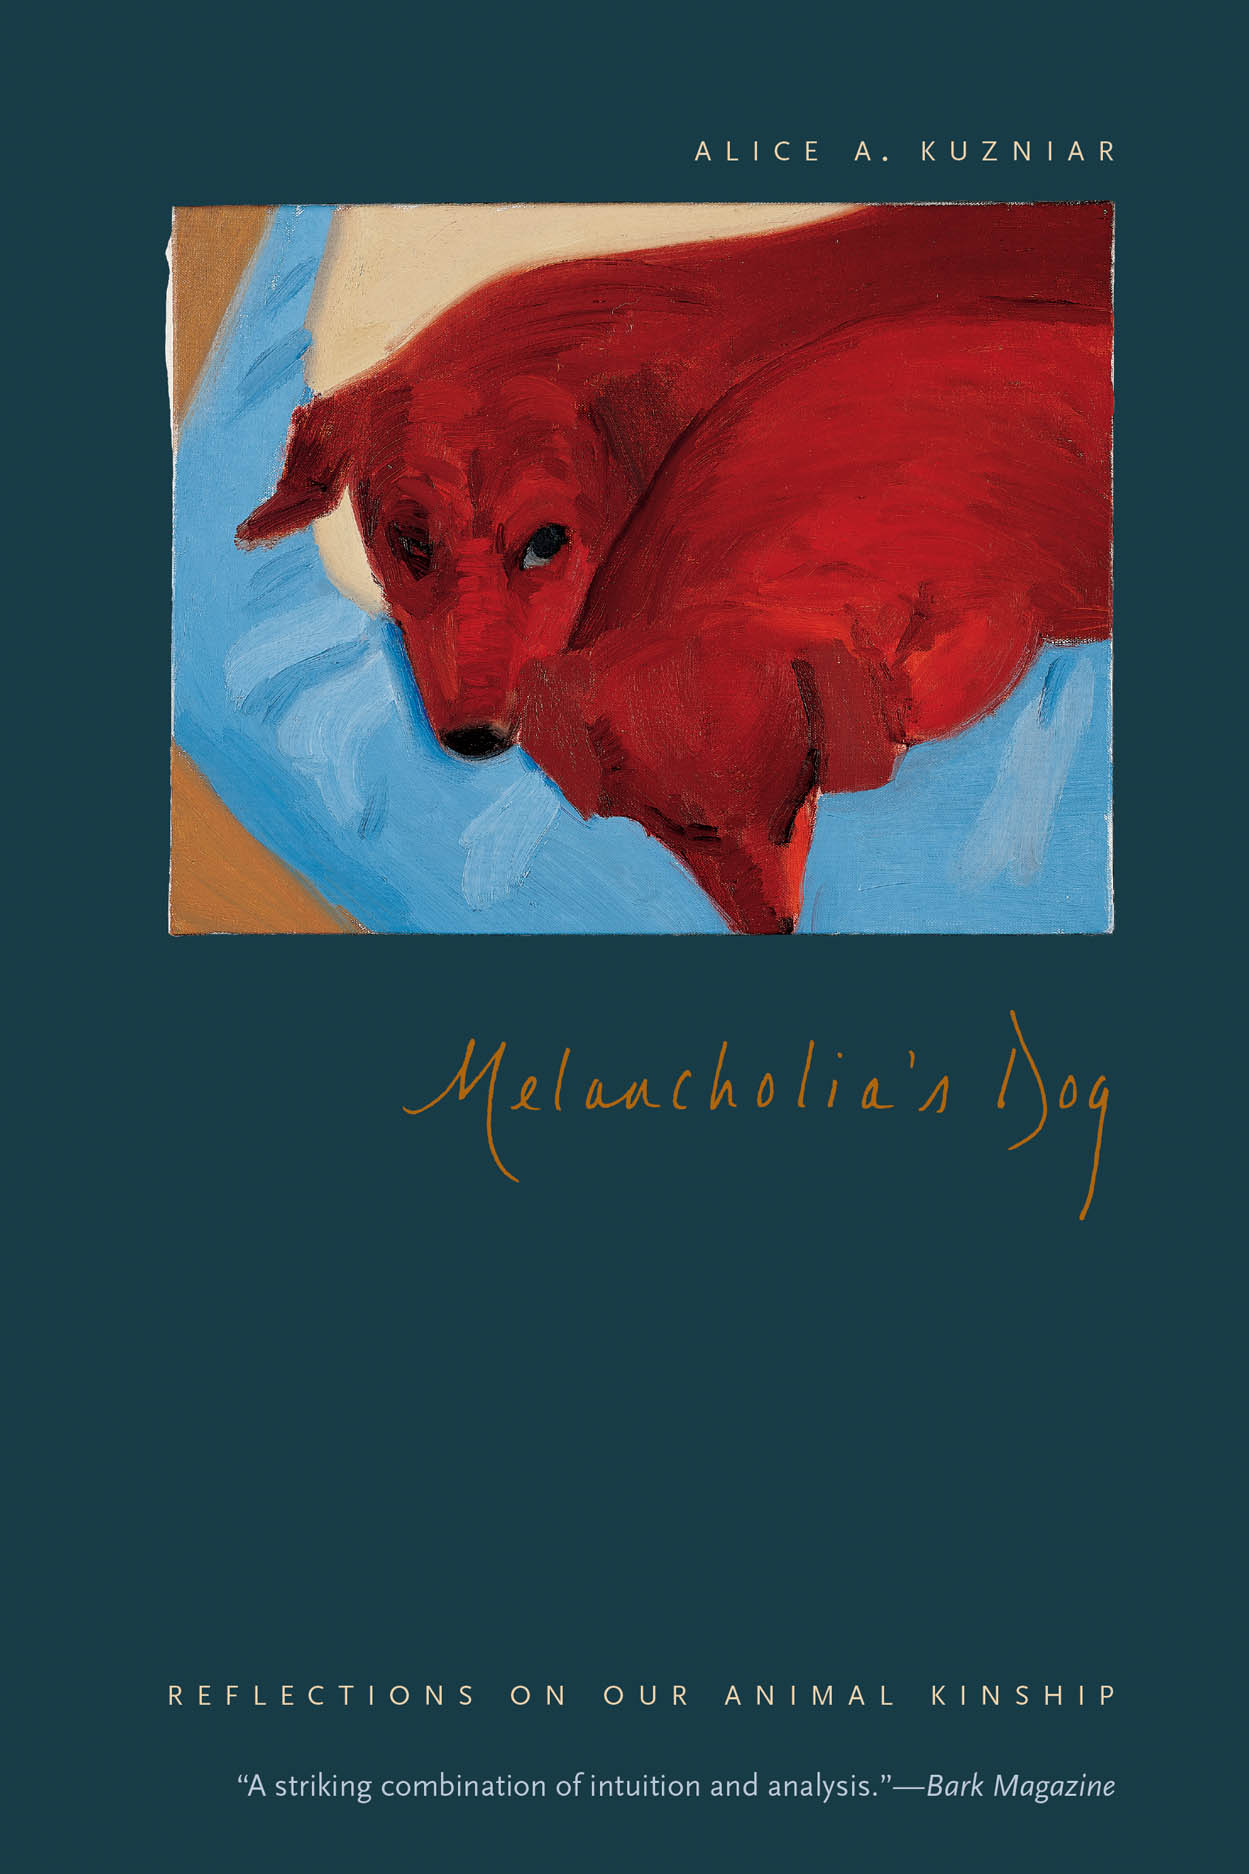 Melancholia's Dog: Reflections on Our Animal Kinship